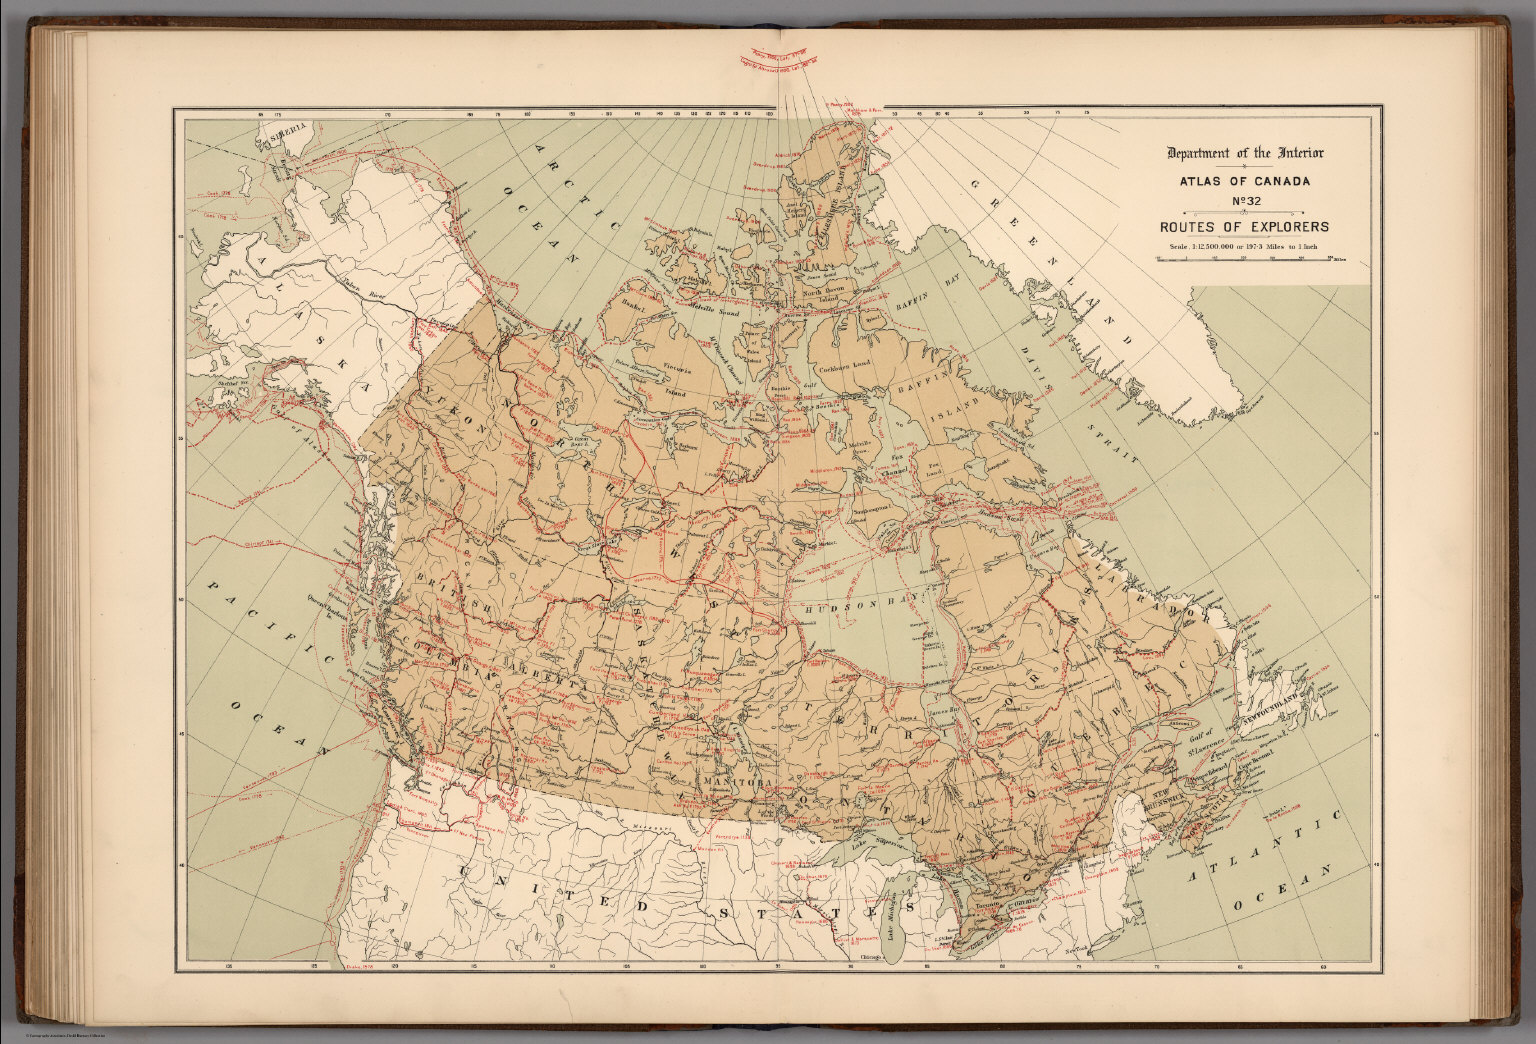 Buy Map Of Canada.No 32 Routes Of Explorers David Rumsey Historical Map Collection